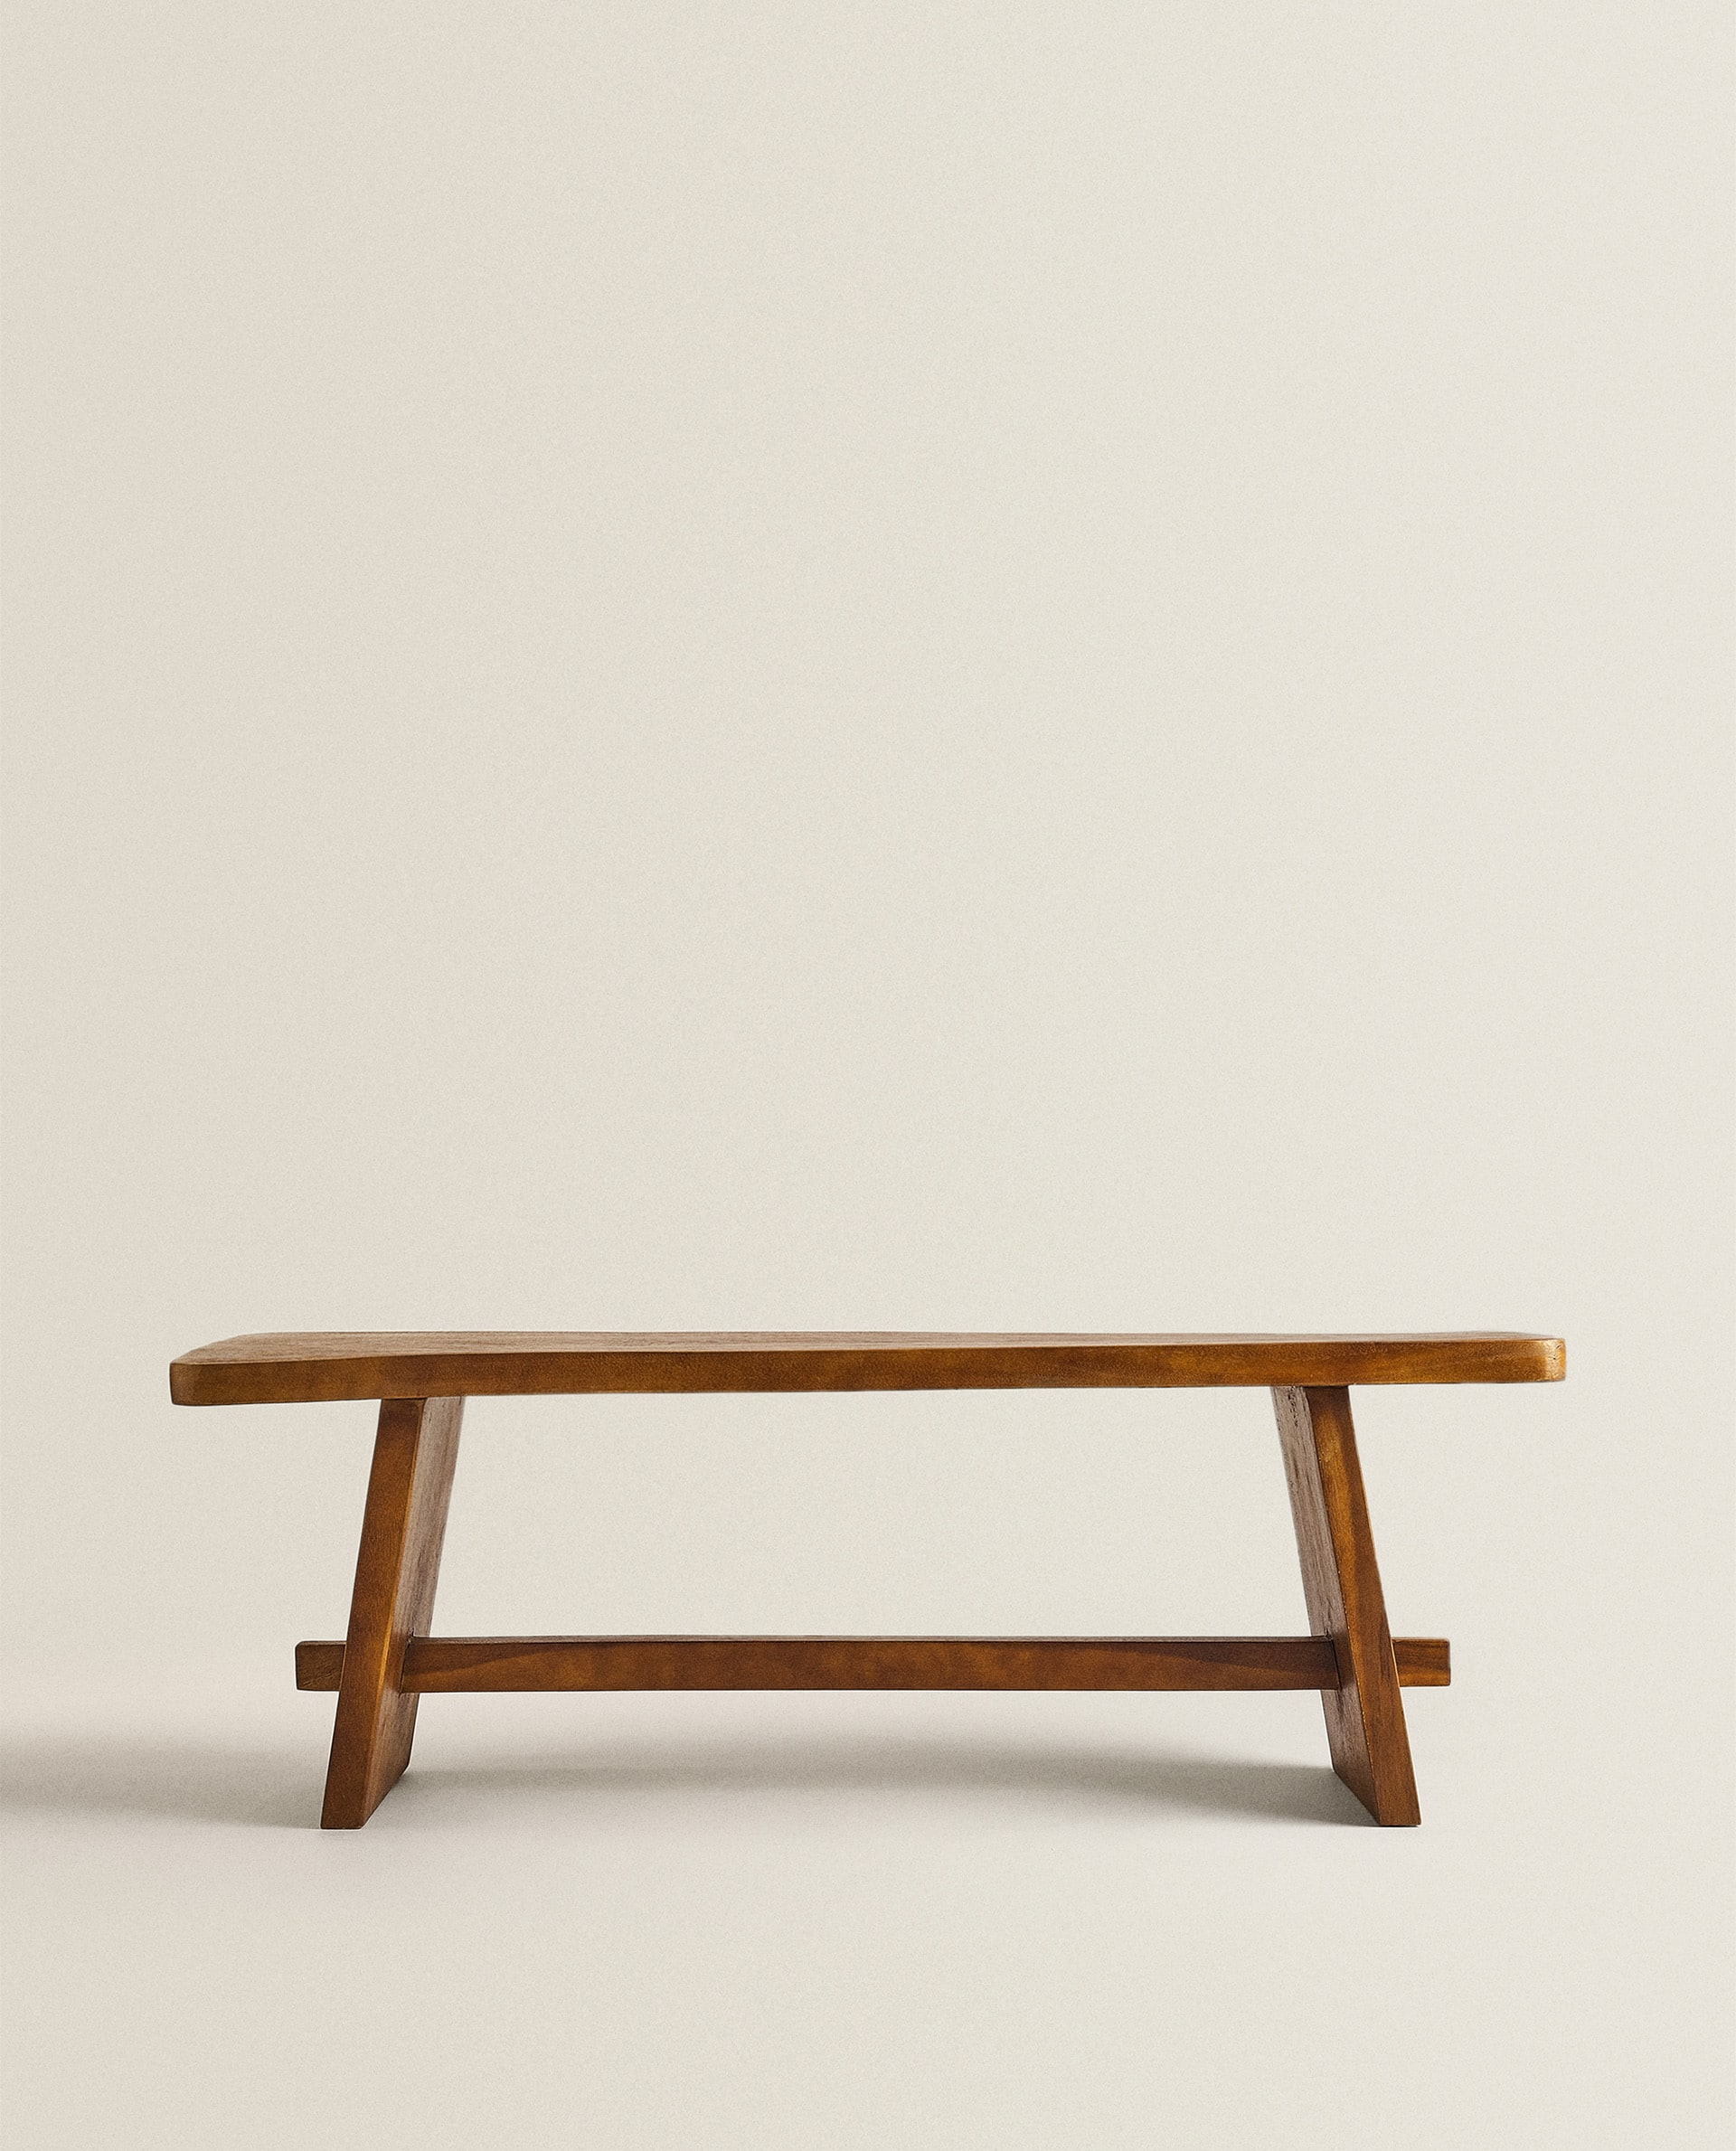 Wood Bench Furniture Living Room New Collection Zara Home Saudi Arabia